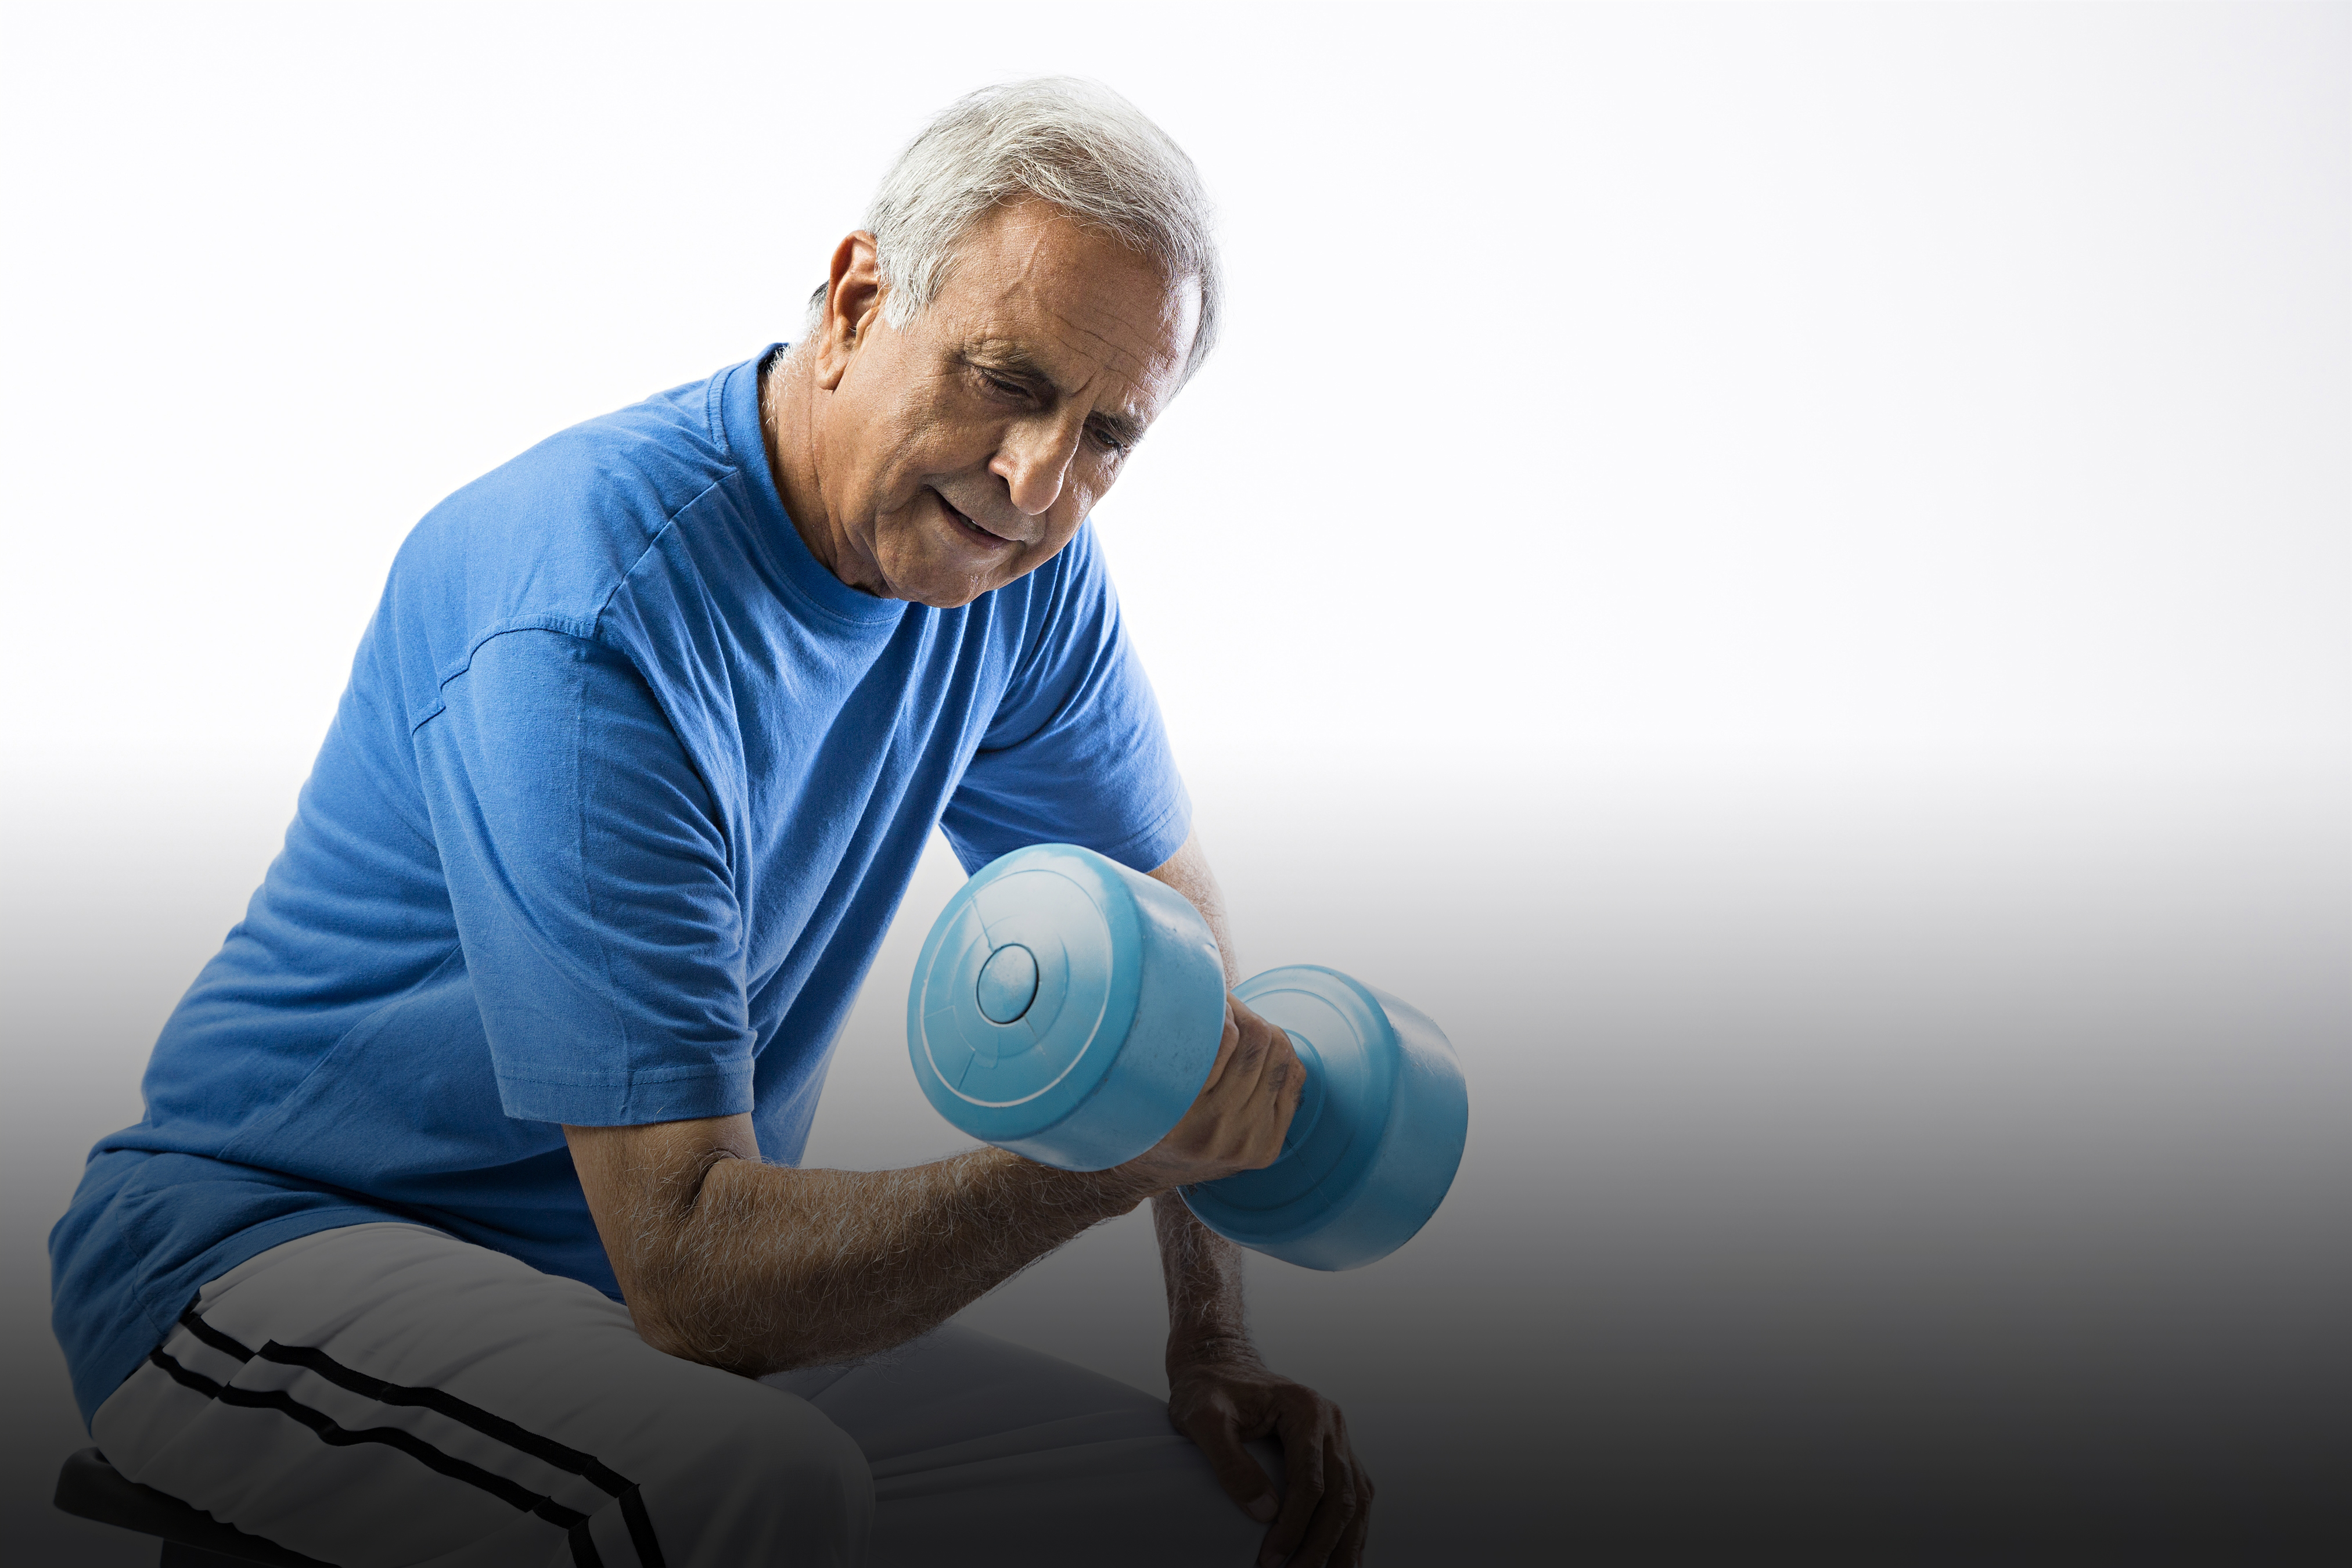 Home Exercising Made Easy – 10 Awesome Workout Aids & Equipment for Seniors